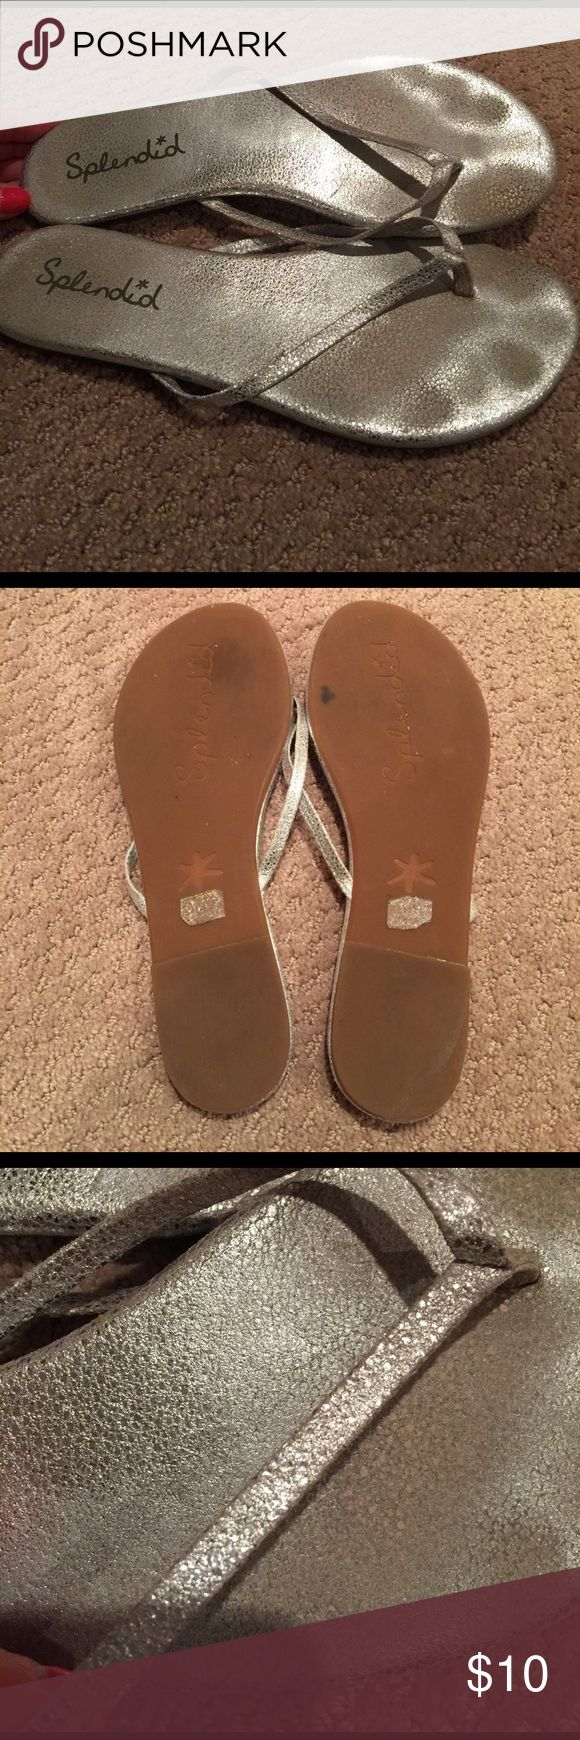 Thong sandals by Splendid Silver thong sandals by Splendid. Only worn a handful of times. No damages or rips. Just toe imprints on padding. Cracked silver print Splendid Shoes Sandals